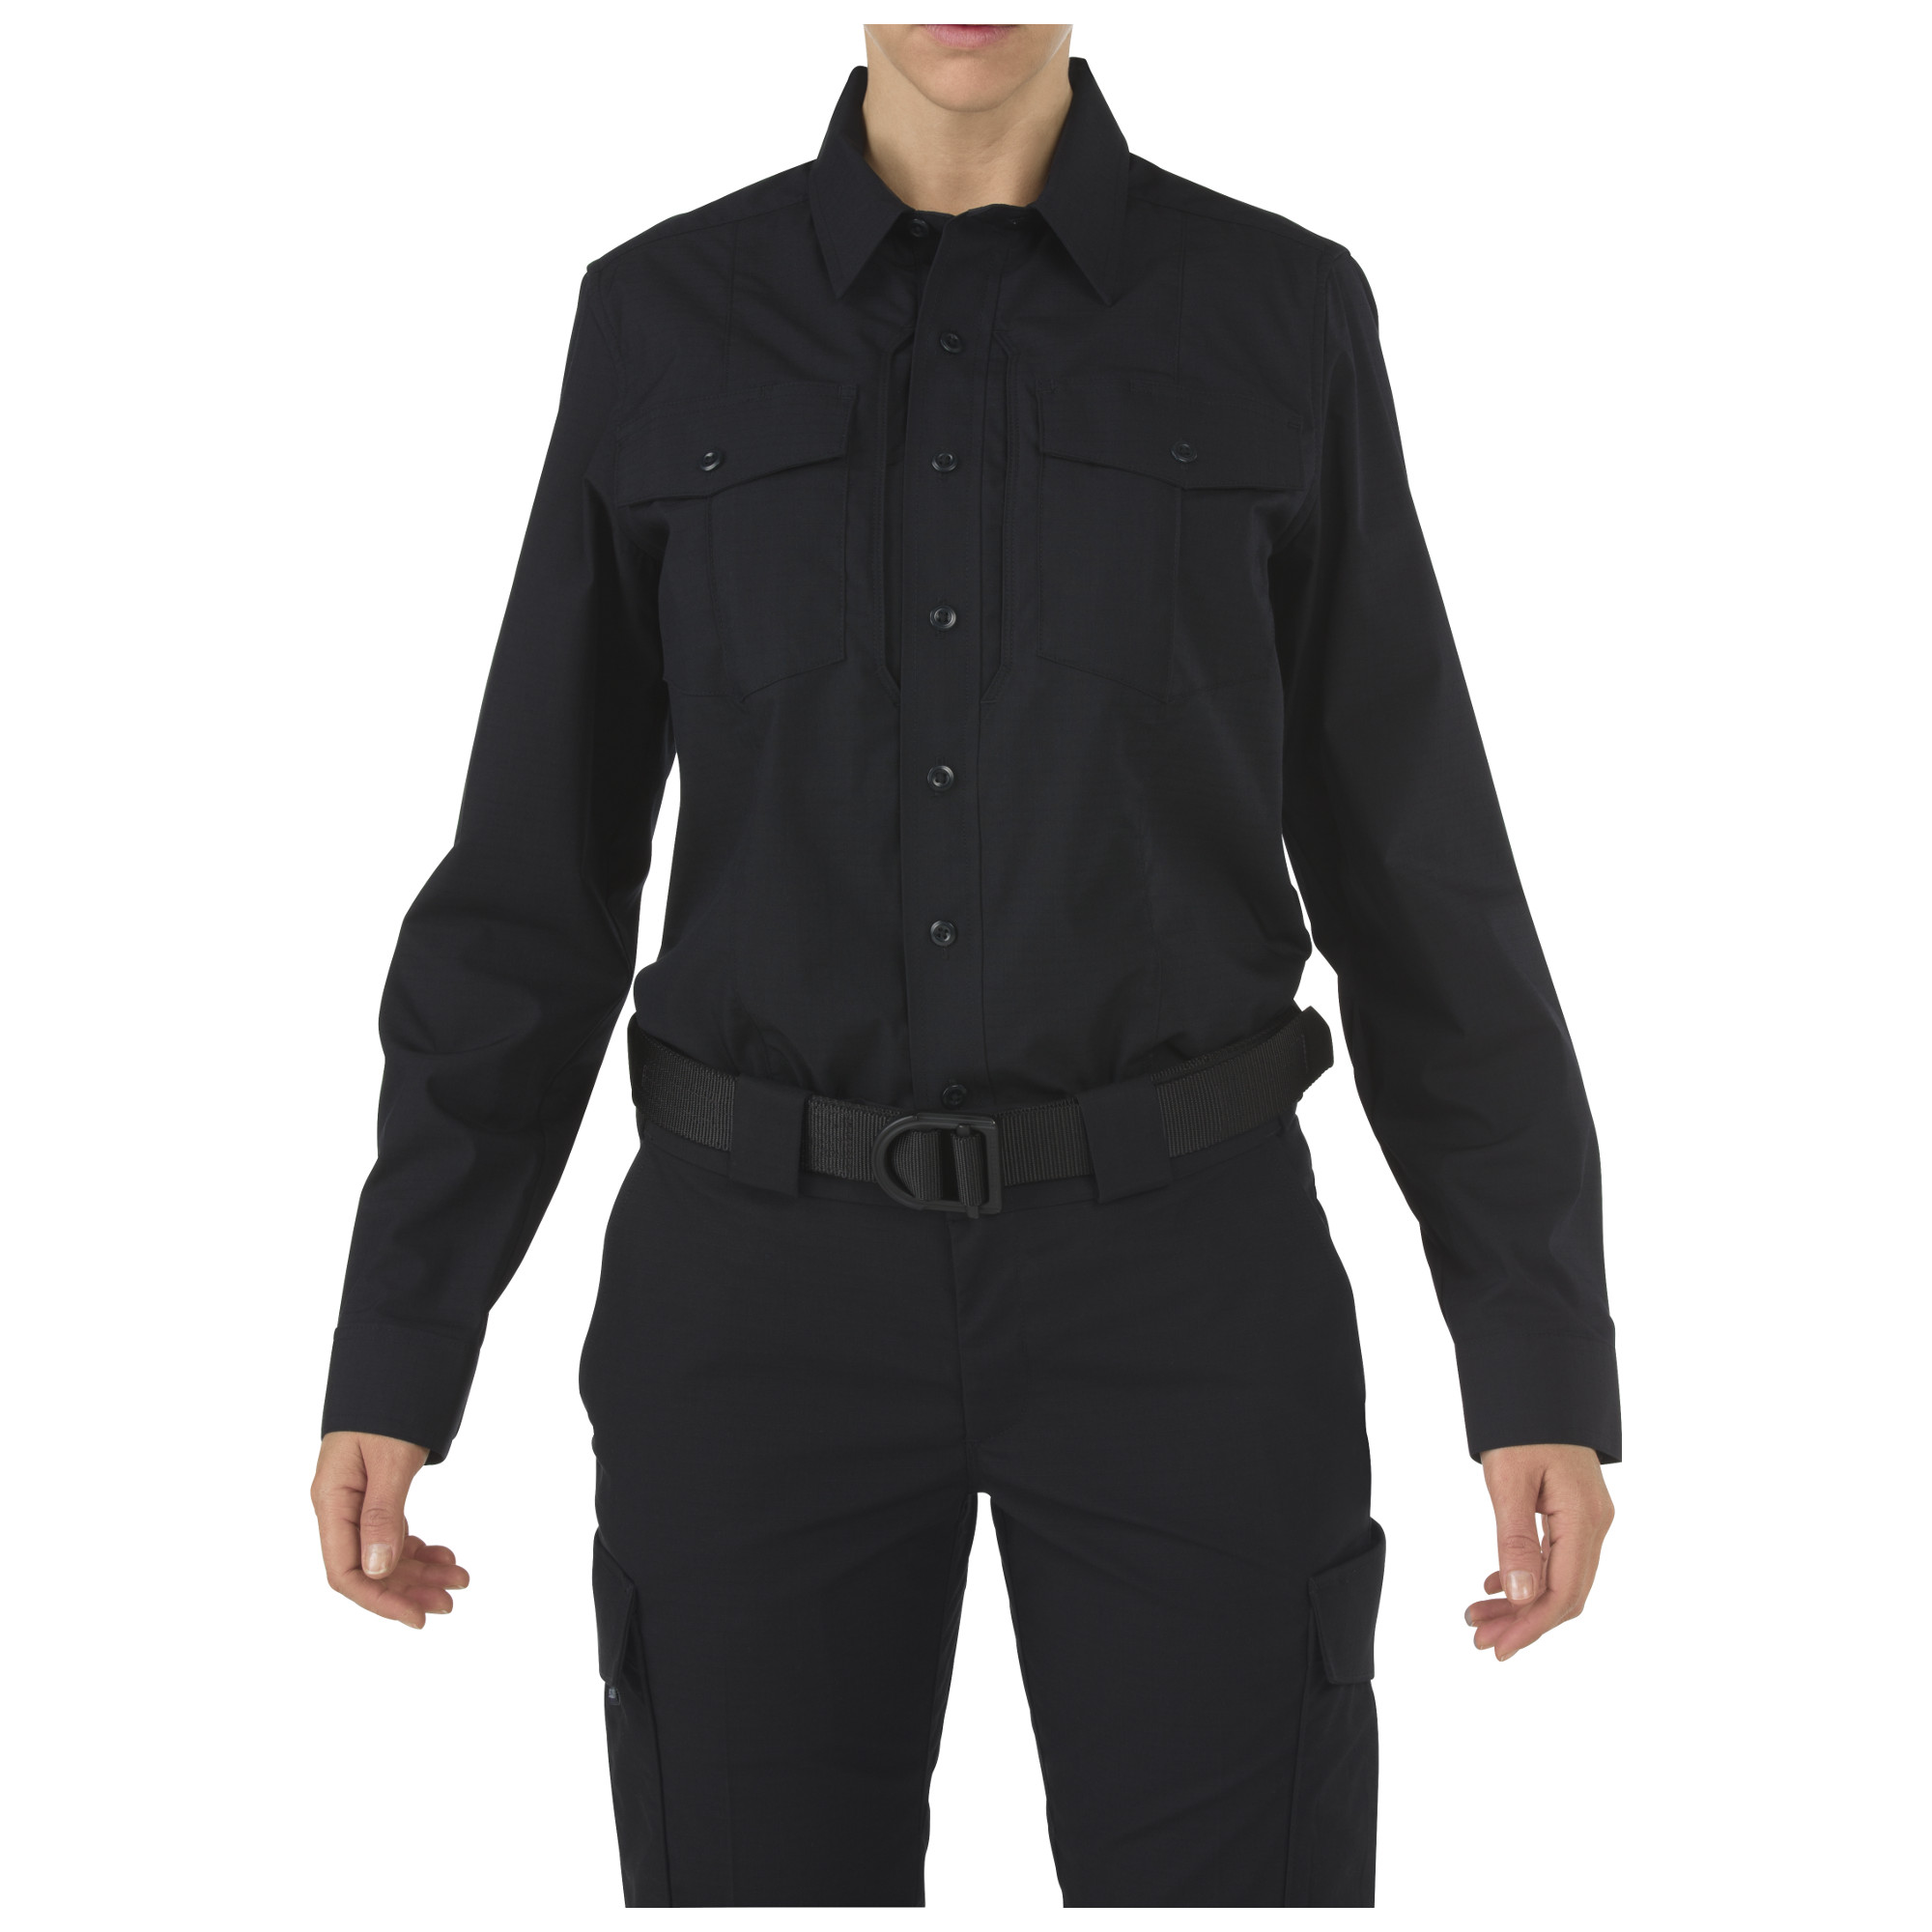 5.11 Tactical Womens 5.11 Stryke™ Class-B Pdu® Long Sleeve Shirt-5.11 Tactical